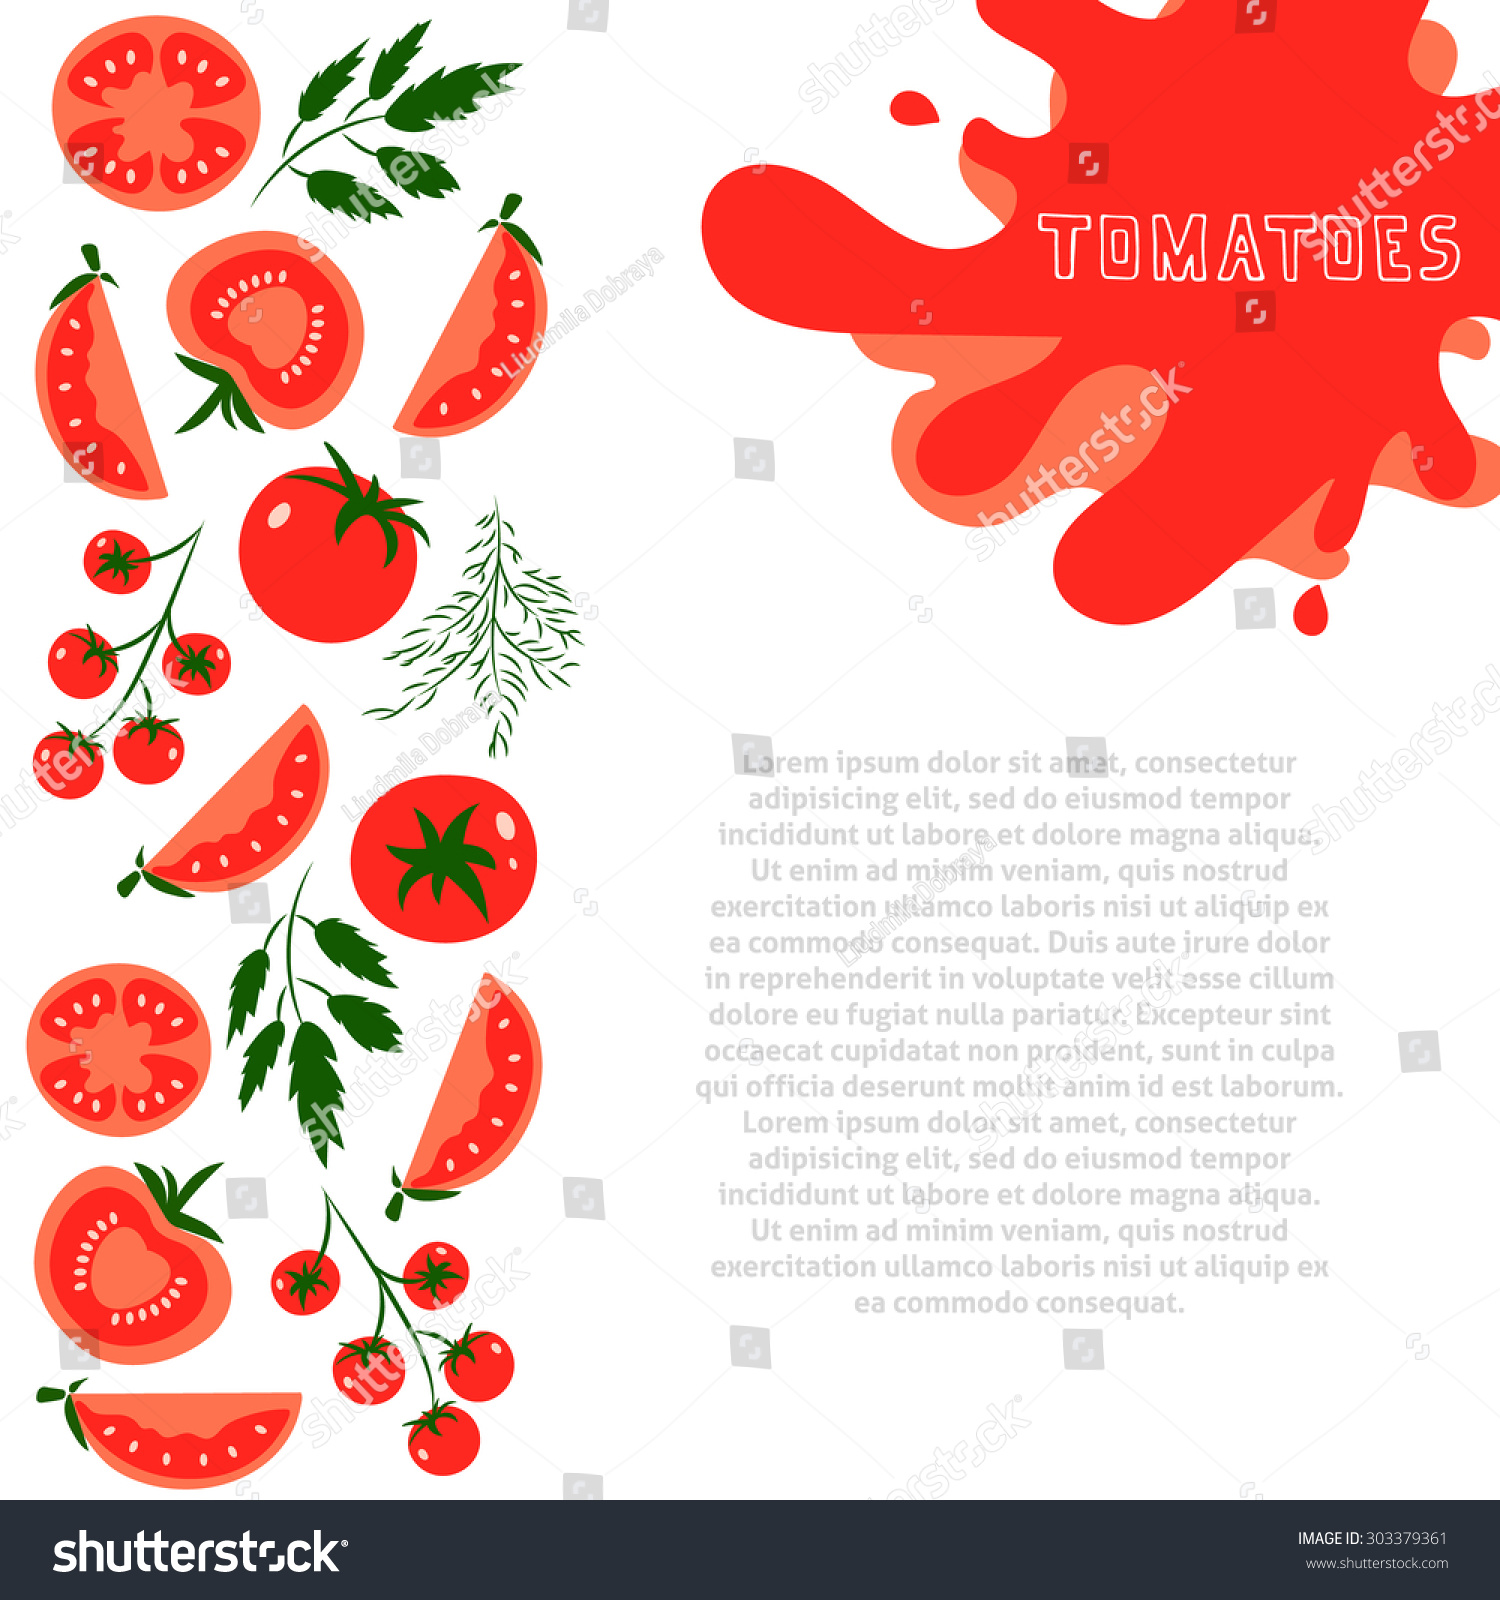 Template Design Red Tomatoes Place Your Stock Vector Royalty Free ...